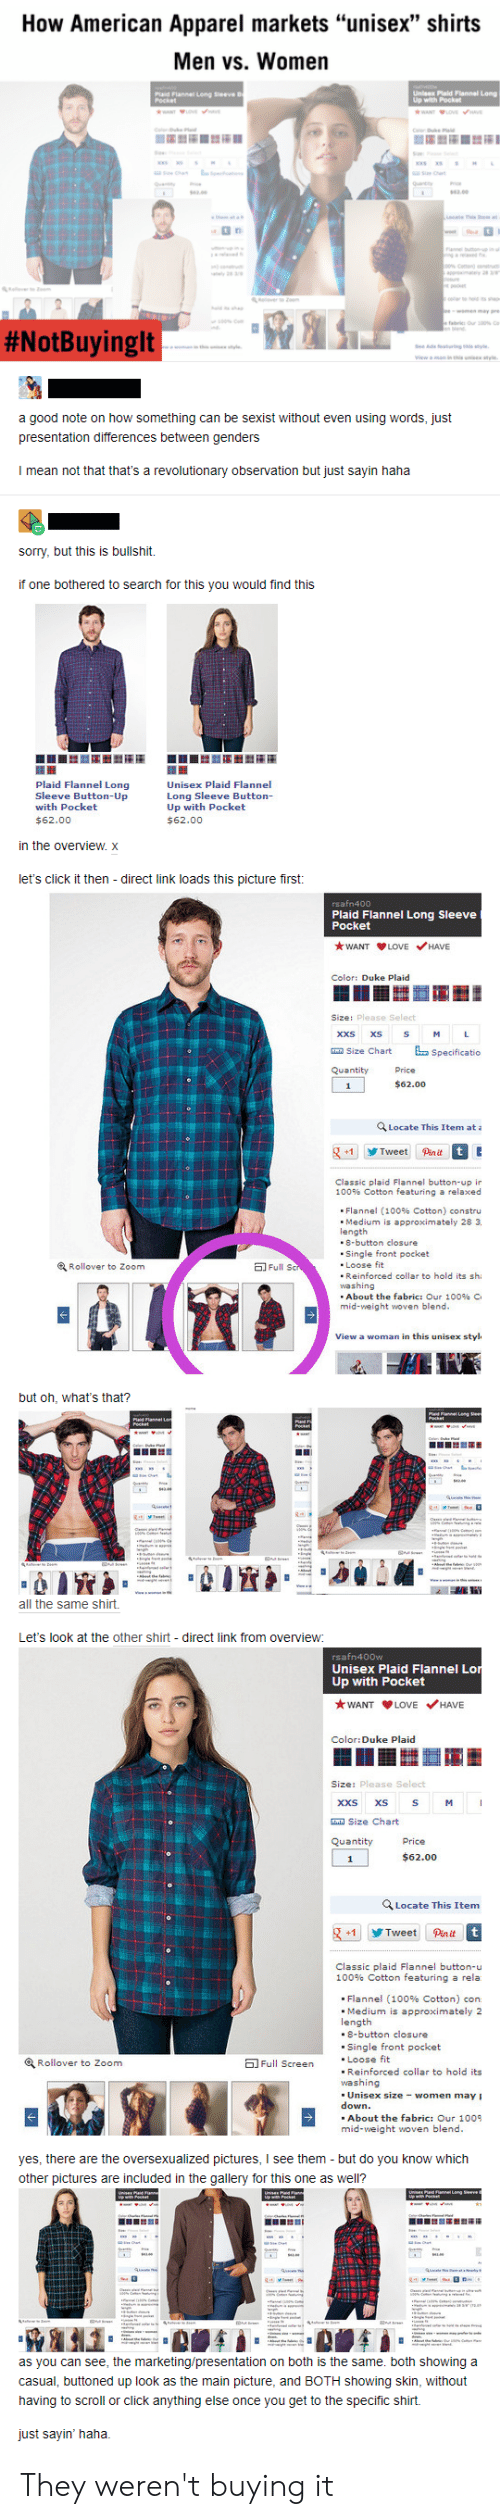 """Men Vs Women: How American Apparel markets """"unisex"""" shirts  Men vs. Women  Unisex Plald Flannel Long  with Pocket  Plaid Flannel Long Sieeve B  Pecket  www LOVE  C k a  S  wws xs  Che  Quantty  aty  sa.00  mata  Lecate This et  mem e  n  ww  in  an butoe  greae  oo% Coen)  atly 28 30  t pece  Mer to m  cr to hld ts s  over Zo  sh  women may re  e fabric Our 100% c  #NotBuyinglt  yle  See Ads featuring ths tyl  vwa man in ths unisex style  a good note on how something can be sexist without even using words, just  presentation differences between genders  I mean not that that's a revolutionary observation but just sayin haha  sorry, but this is bullshit.  if one bothered to search for this you would find this  Plaid Flannel Long  Unisex Plaid Flannel  Long Sleeve Button-  Up with Pocket  Sleeve Button-Up  with Pocket  $62.00  $62.00  in the overview. x  let's click it then - direct link loads this picture first:  rsafn400  Plaid Flannel Long Sleeve  Pocket  WANT LOVE HAVE  Color: Duke Plaid  Size: Please Select  xxs  xs  S  M  Specificatio  Size Chart  Quantity  Price  $62.00  1  Q Locate This Item at a  t E  Tweet Pinit  +1  Classic plaid Flannel button-up ir  100% Cotton featuring a relaxed  Flannel (100% Cotton ) constru  Medium is approximately 28 3  length  8-button closure  Single front pocket  Loose fit  Reinforced collar to hold its sh  washing  About the fabric: Our 100% C  mid-weight woven blend.  Rollover to Zoom  EFull Sc  View a woman in this unisex styl  but oh, what's that?  ad Flanne Leng een  Pochet  Paid Flannel Le  Pocket  Plaid F  Poet  Ce  a  Cha  s  Siete  C  g  O an  0Cn  es  ti  all the same shirt.  direct link from overview  Let's look at the other shirt  rsafn400w  Unisex Plaid Flannel Lor  Up with Pocket  WANT LOVE HAVE  Color:Duke Plaid  Size: Please Select  xxs xs  M  a Size Chart  Quantity  Price  $62.00  1  Locate This Item  g+1 Tweet  Pin it t  Classic plaid Flannel button-u  100% Cotton featuring a rela  Flannel (100 % Cotton ) con  Me"""